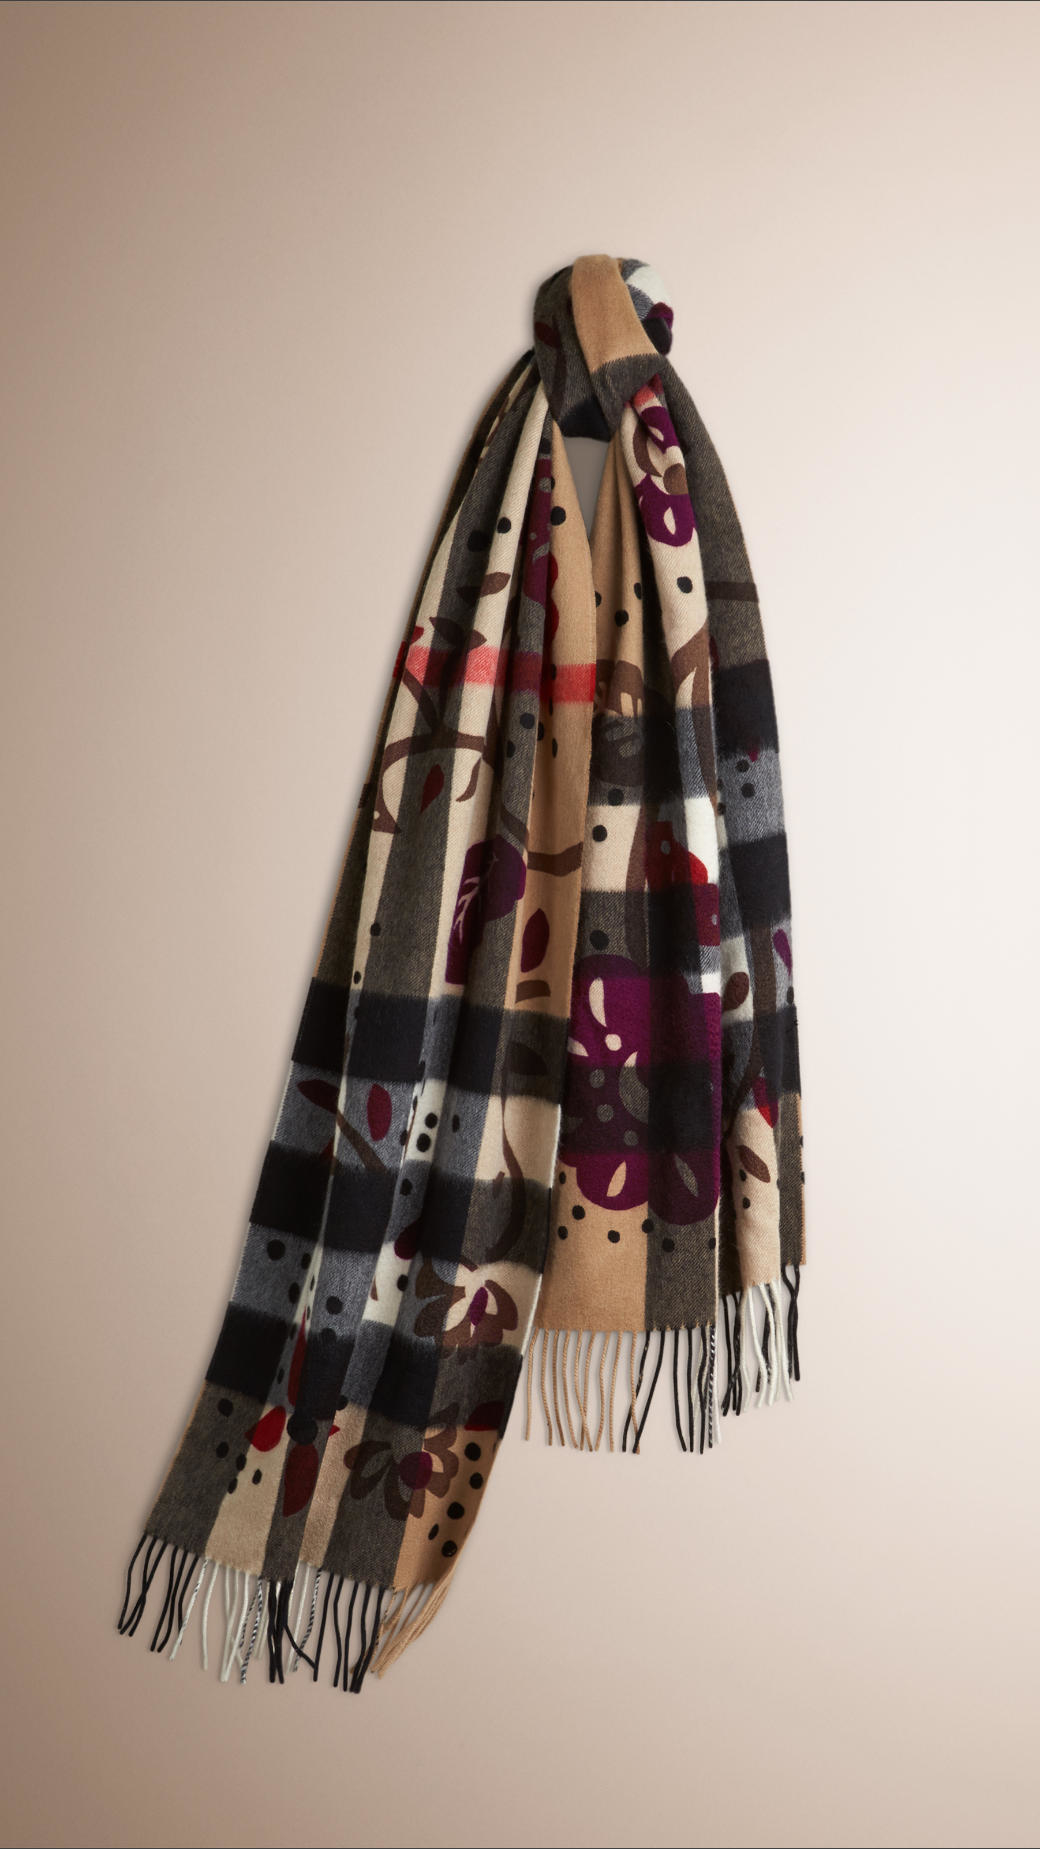 Brand New Unisex Sale Online Burberry floral print scarf Sale Genuine 2018 New Cheap Price Cost Cheap Price Free Shipping For Cheap SDaWjvrh